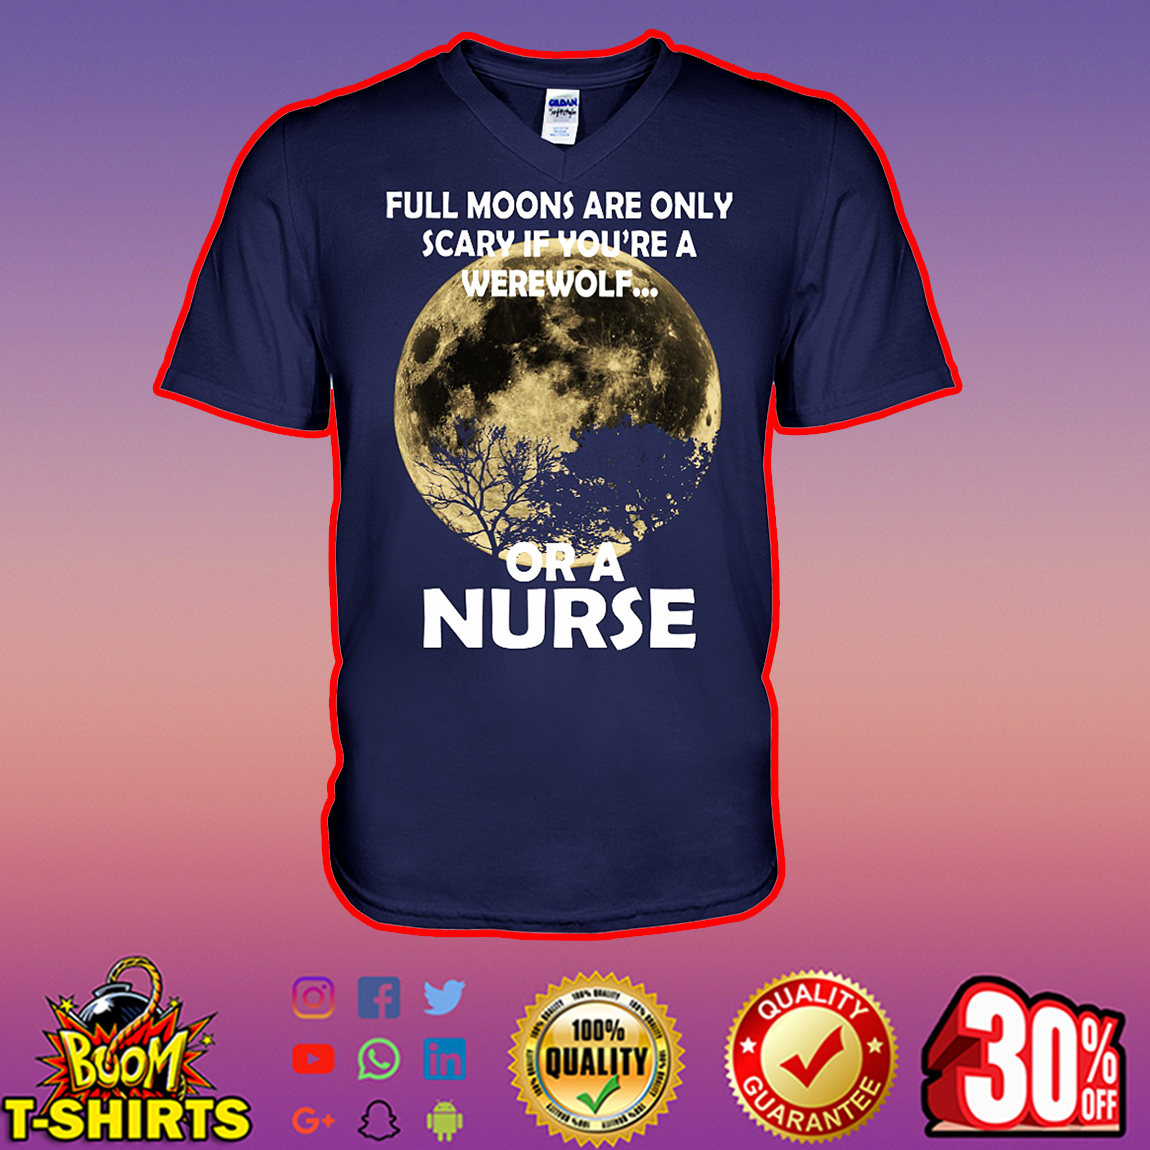 Full moons are only scary if you're a werewolf or a nurse v-neck